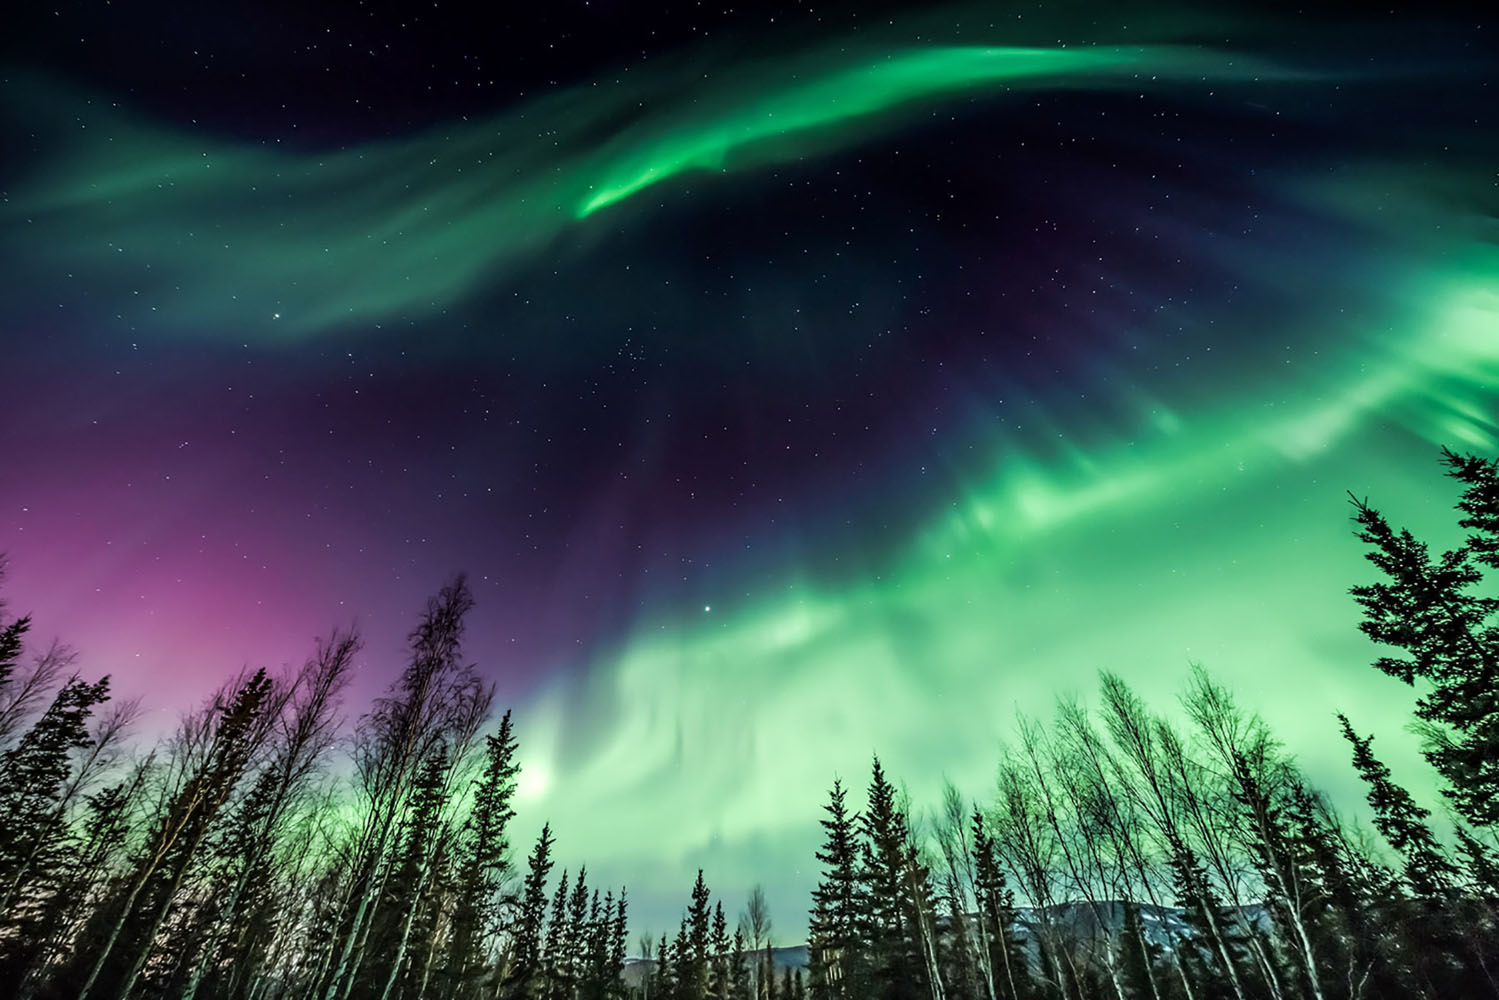 Aurora borealis over tree line in Fairbanks, Alaska